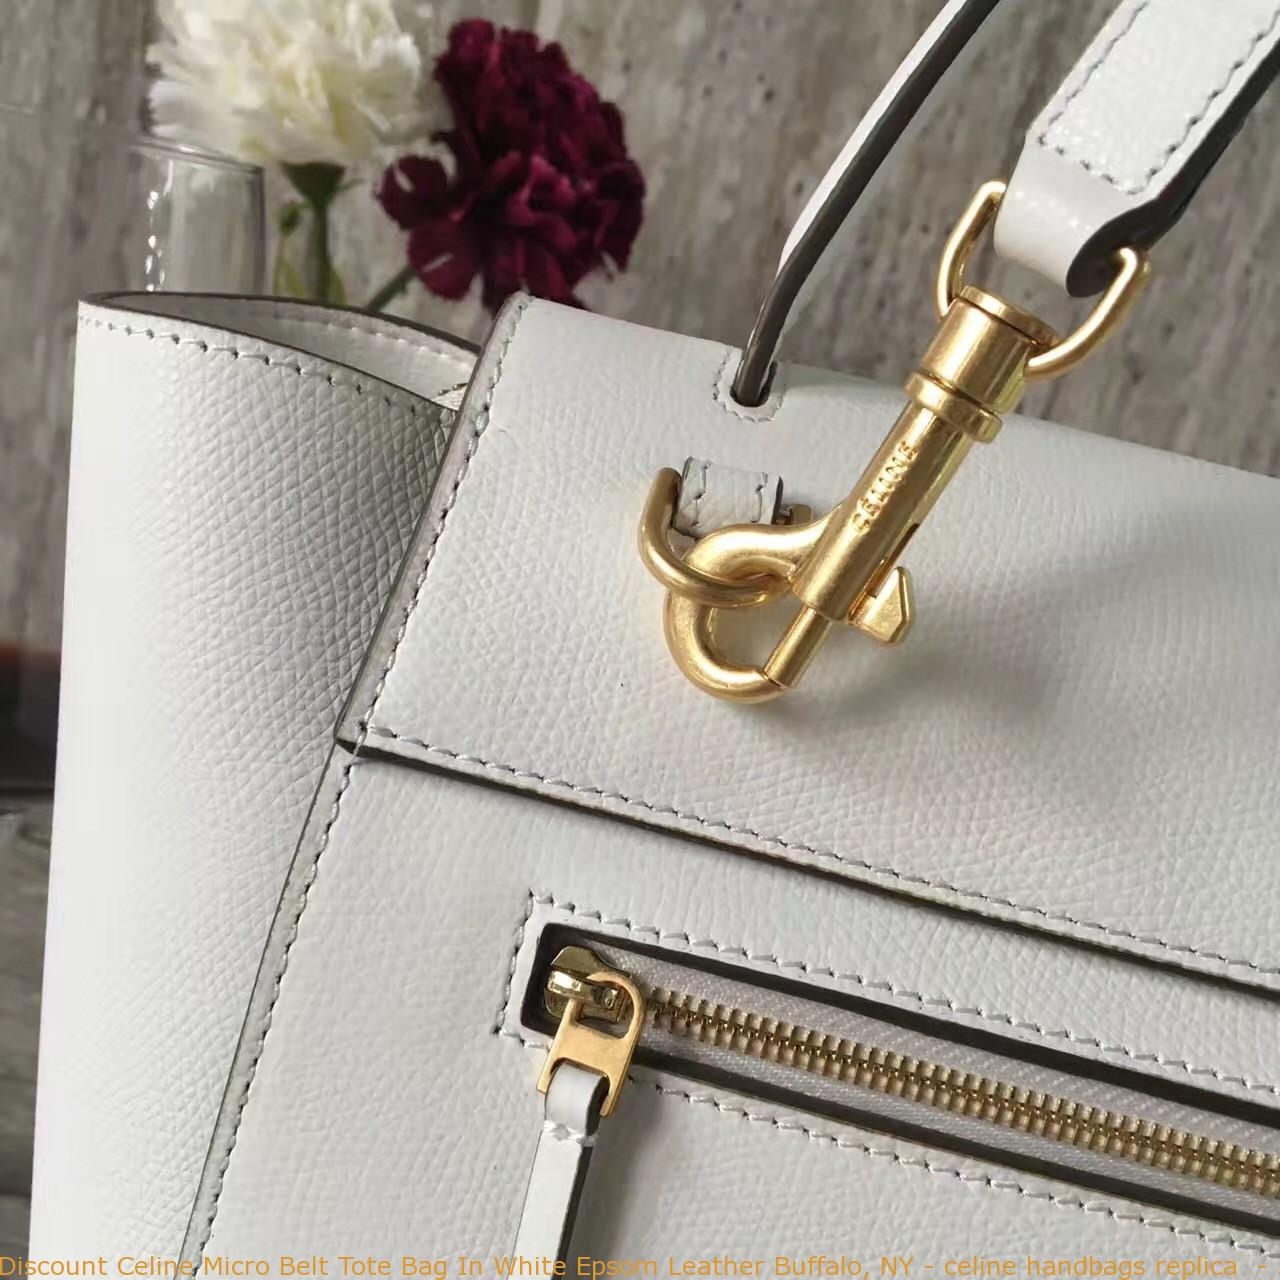 6a2a9629a0 Discount Celine Micro Belt Tote Bag In White Epsom Leather Buffalo ...